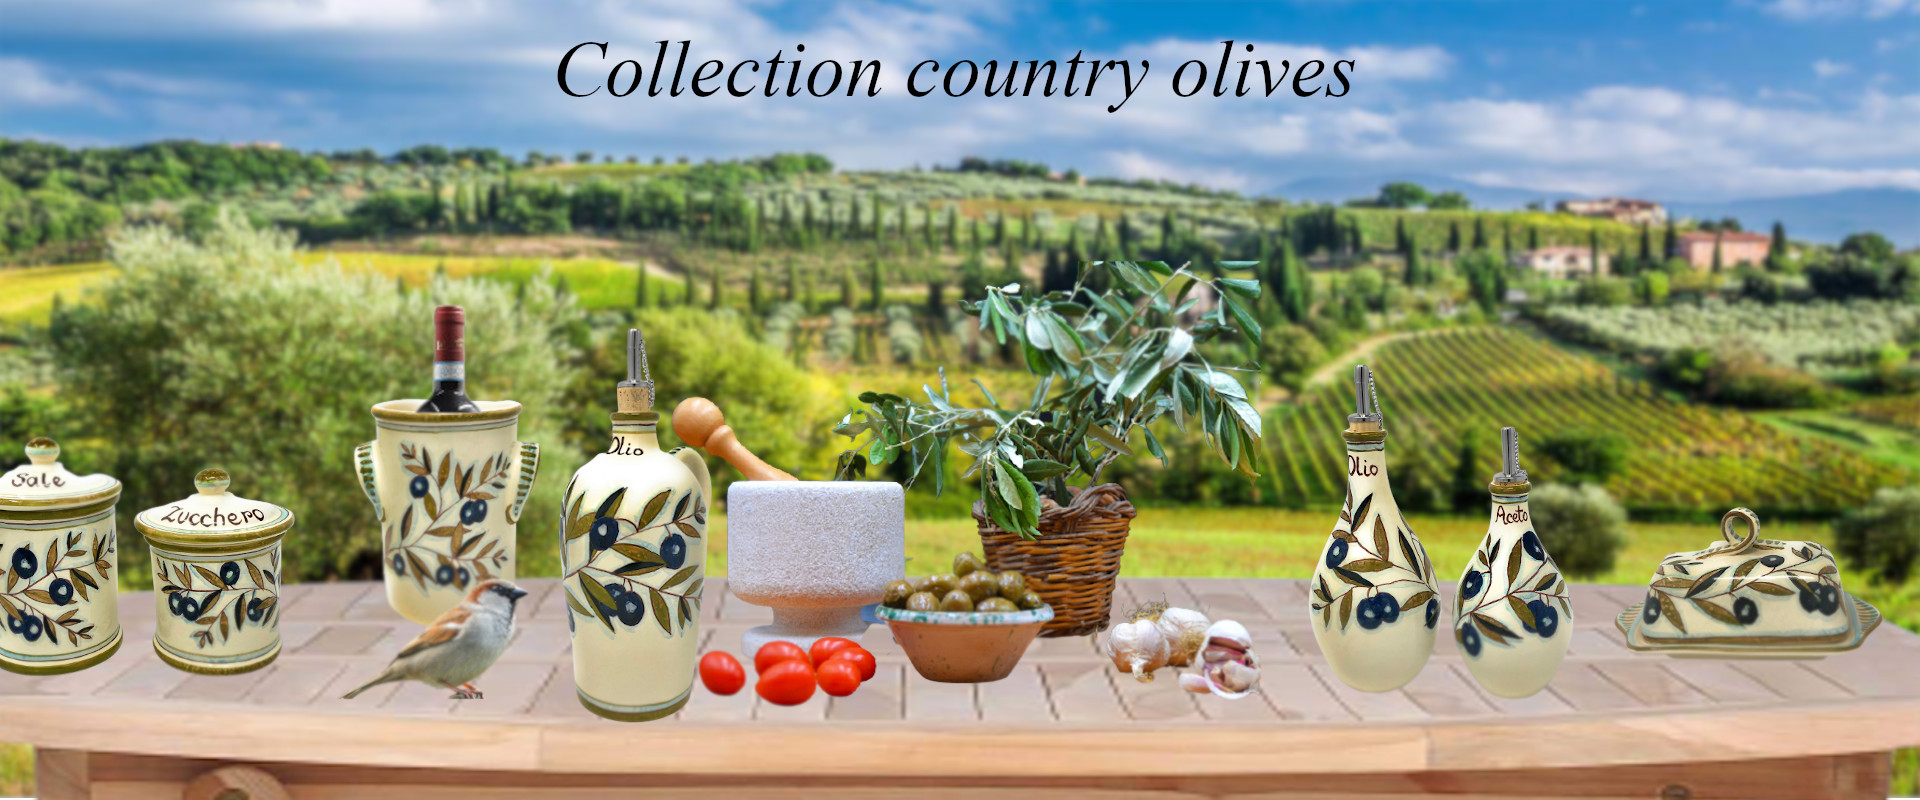 collection country olives